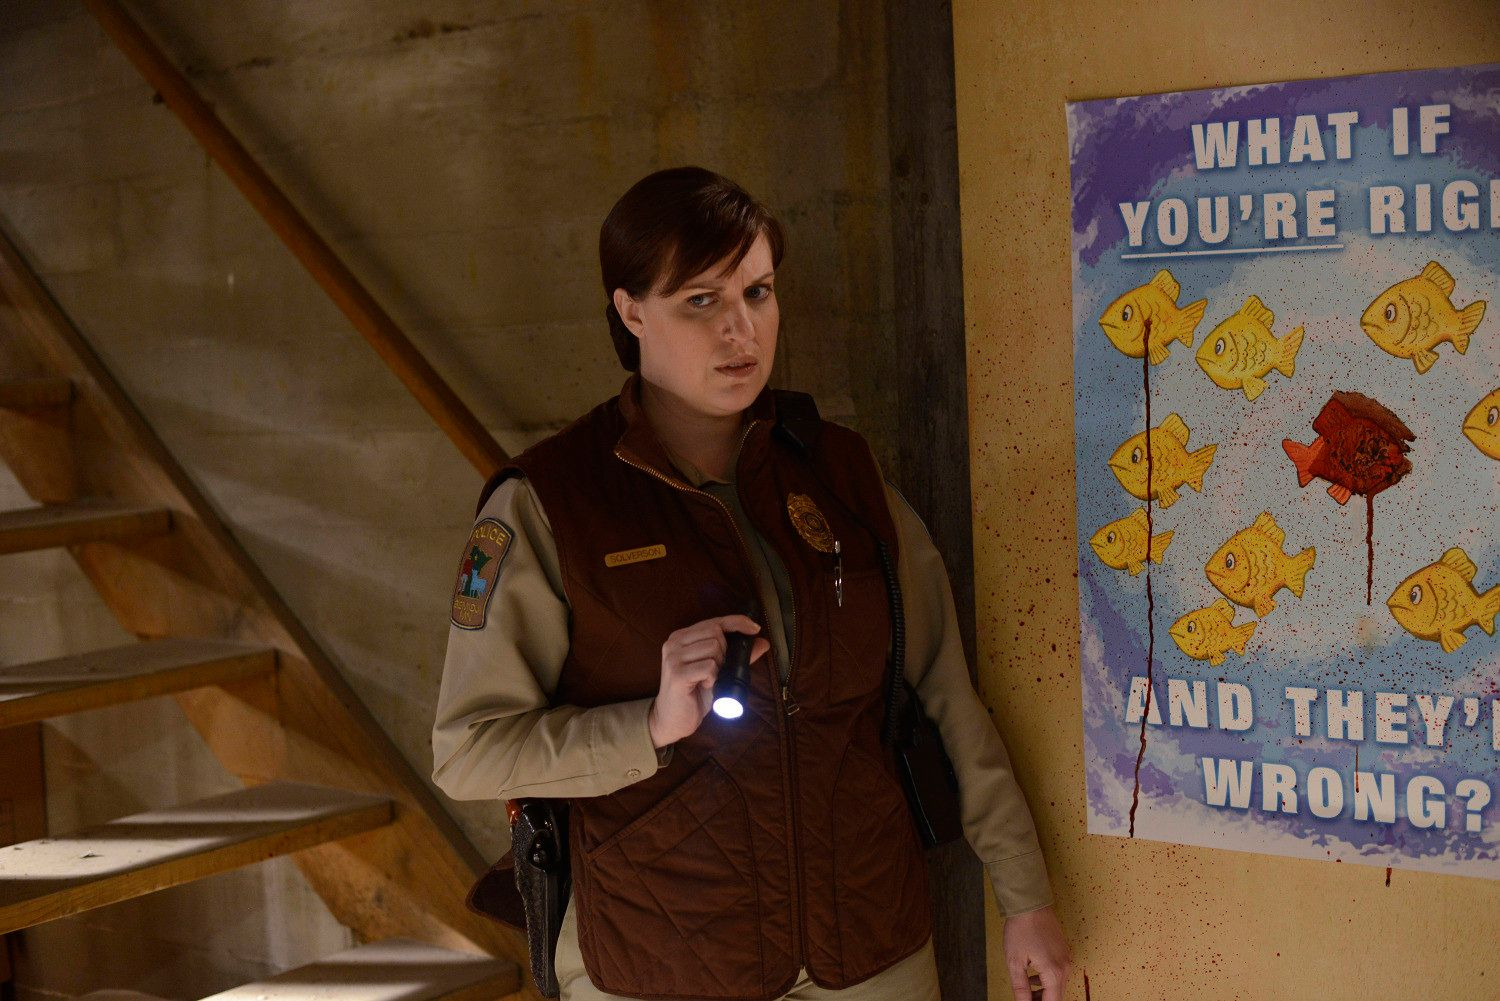 http://cdn.collider.com/wp-content/uploads/fargo-season-1-episode-5-allison-tolman.jpg